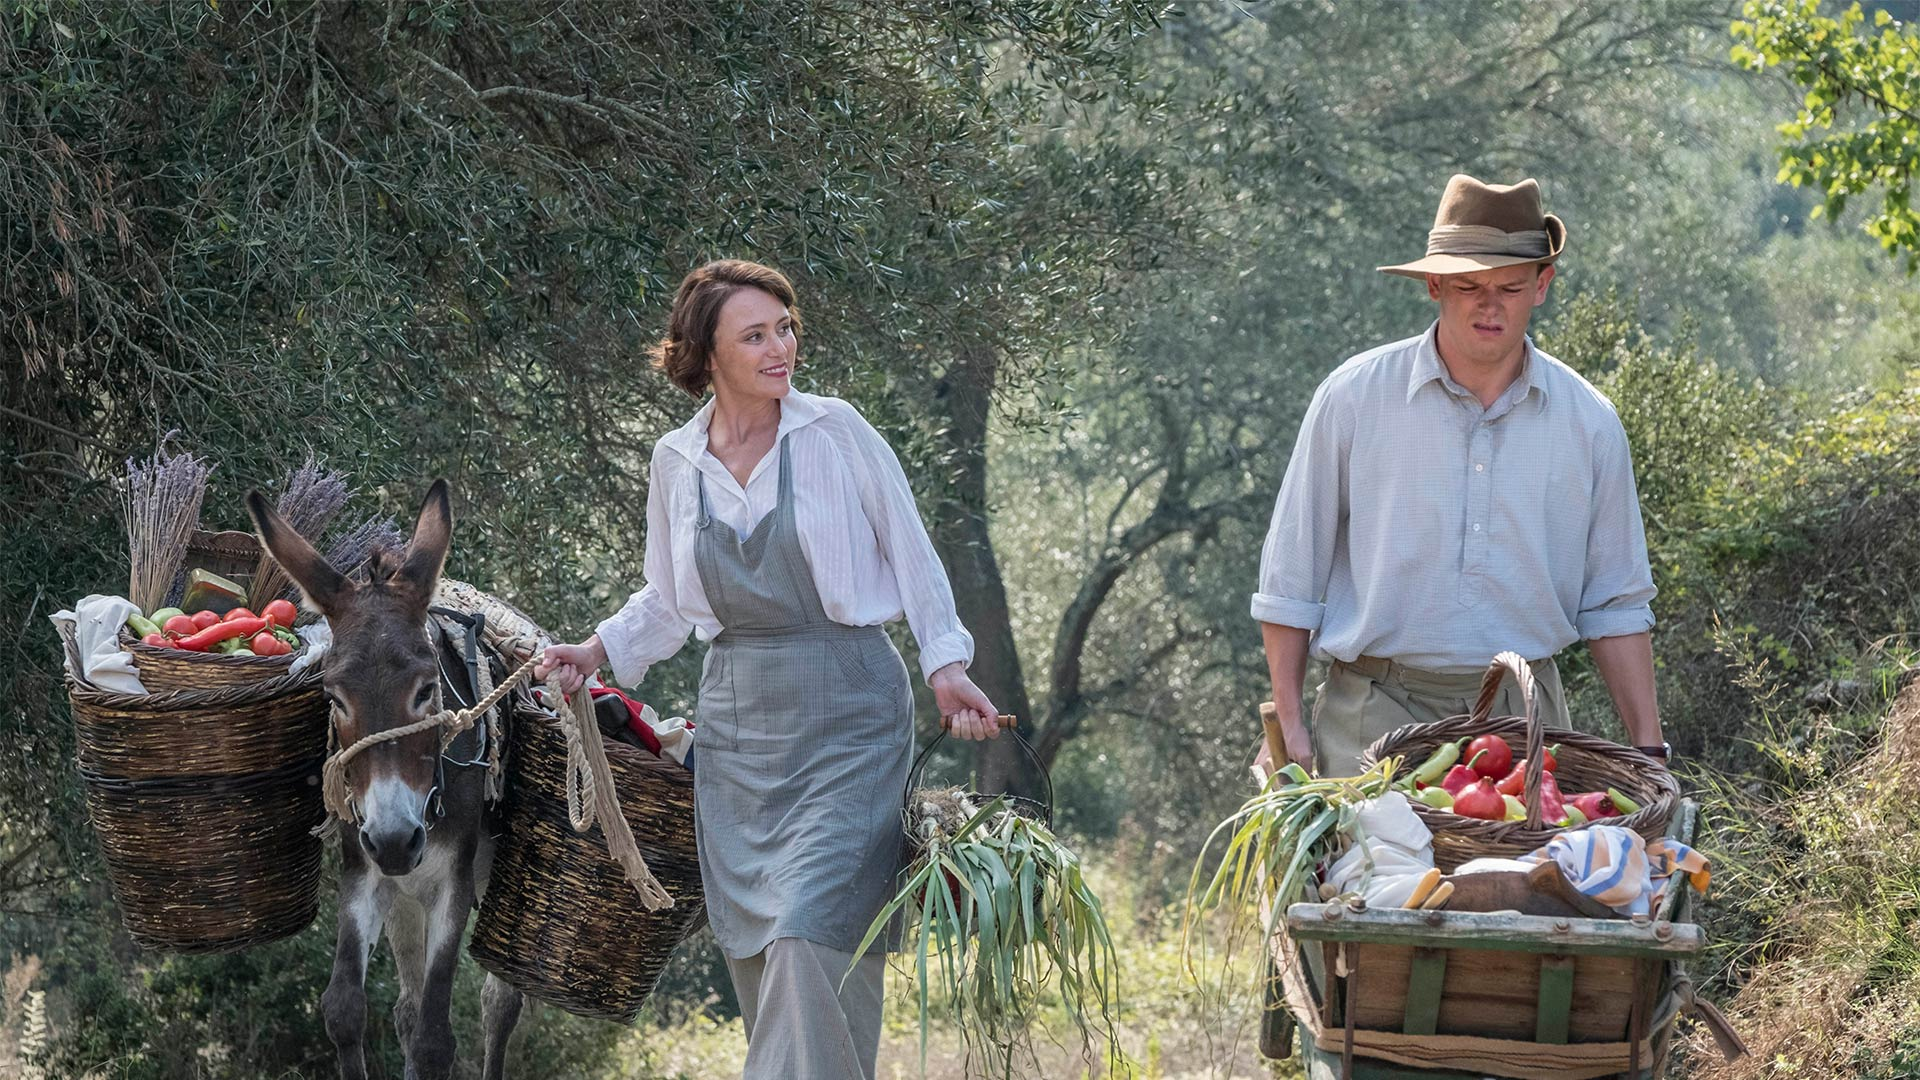 Shown from left to right: Keeley Hawes as Louisa Durrell and Callum Woodhouse as Leslie